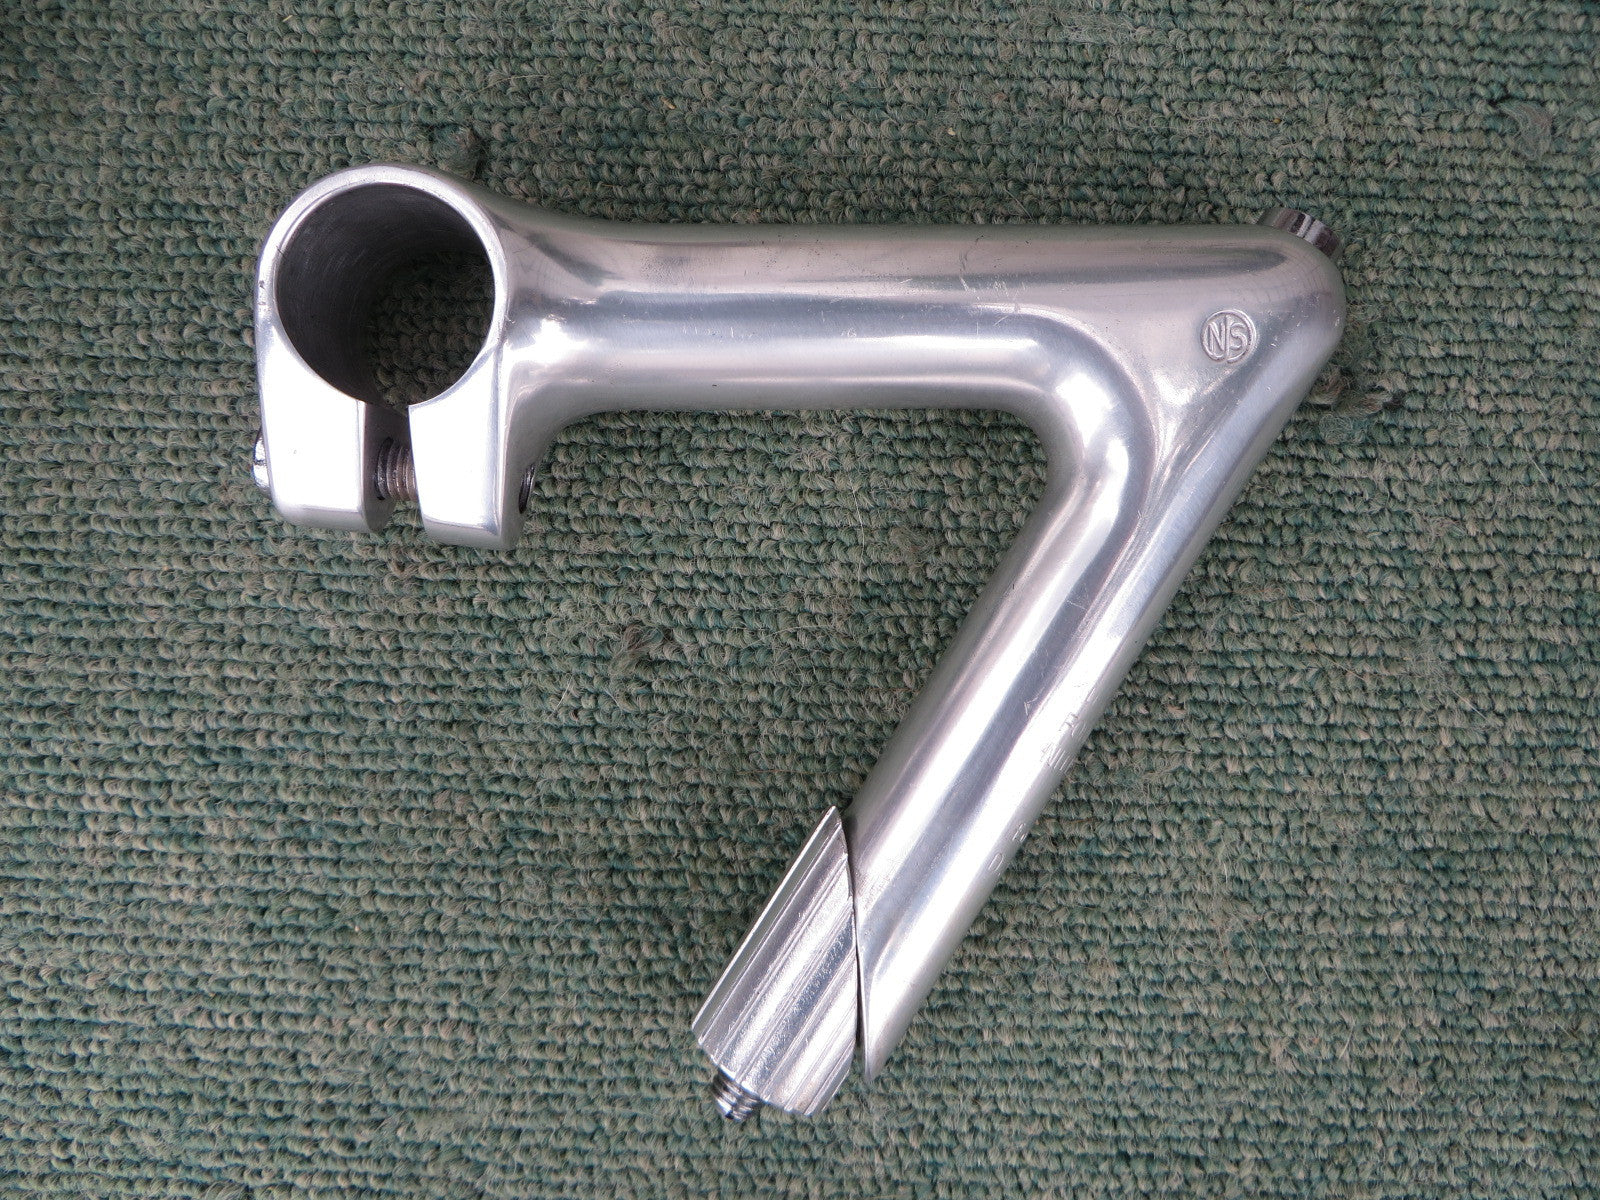 Nitto Jaguar Aluminium NJS Stem 110mm (24011508)